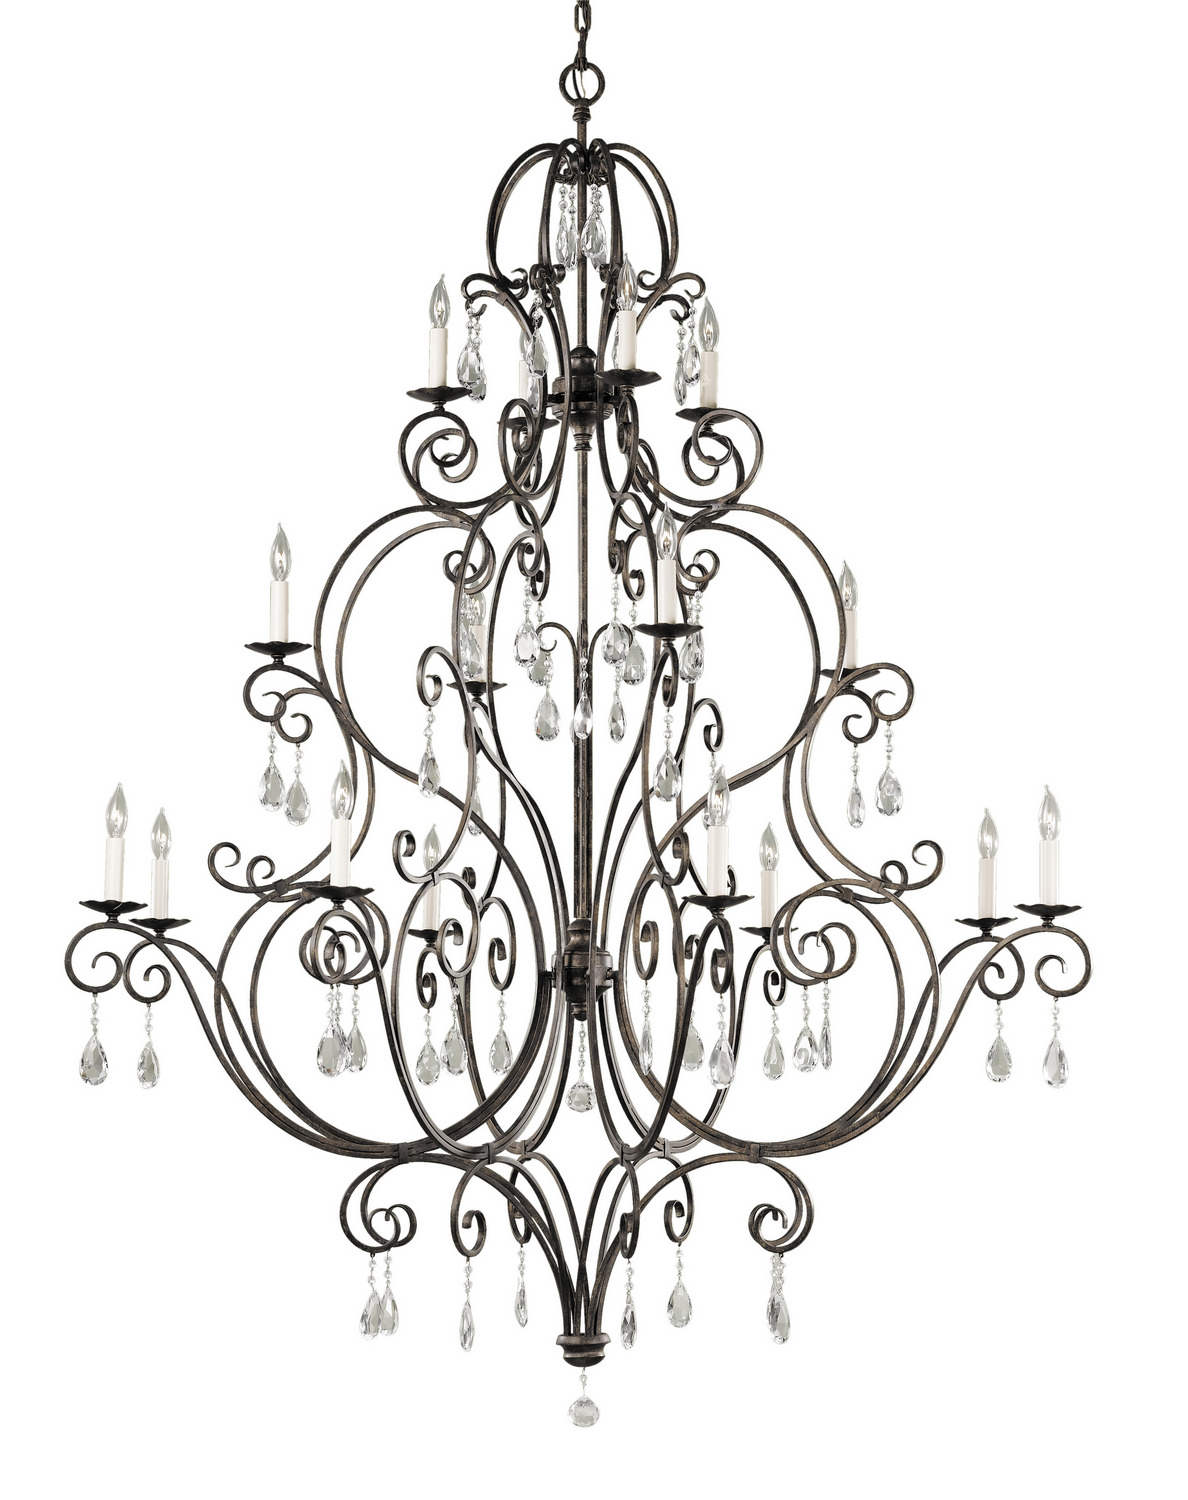 16 Light Chandelier from the Chateau collection by Feiss F2110844MBZ